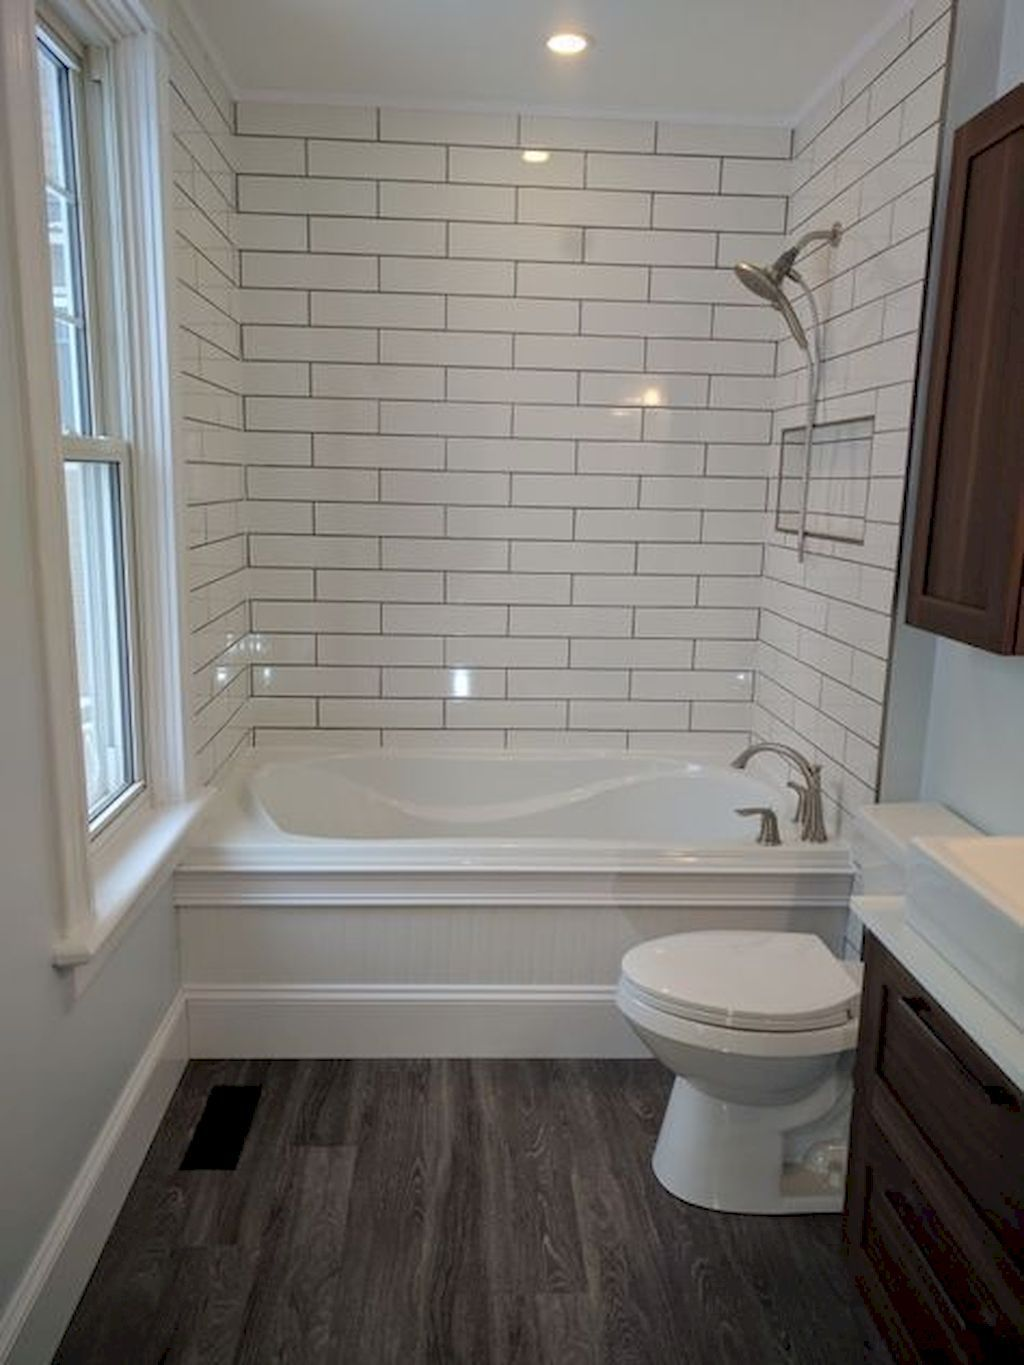 23 Small Master Bathroom Remodel Ideas With Images Minimalist Small Bathrooms Bathroom Remodel Master Modern Small Bathrooms